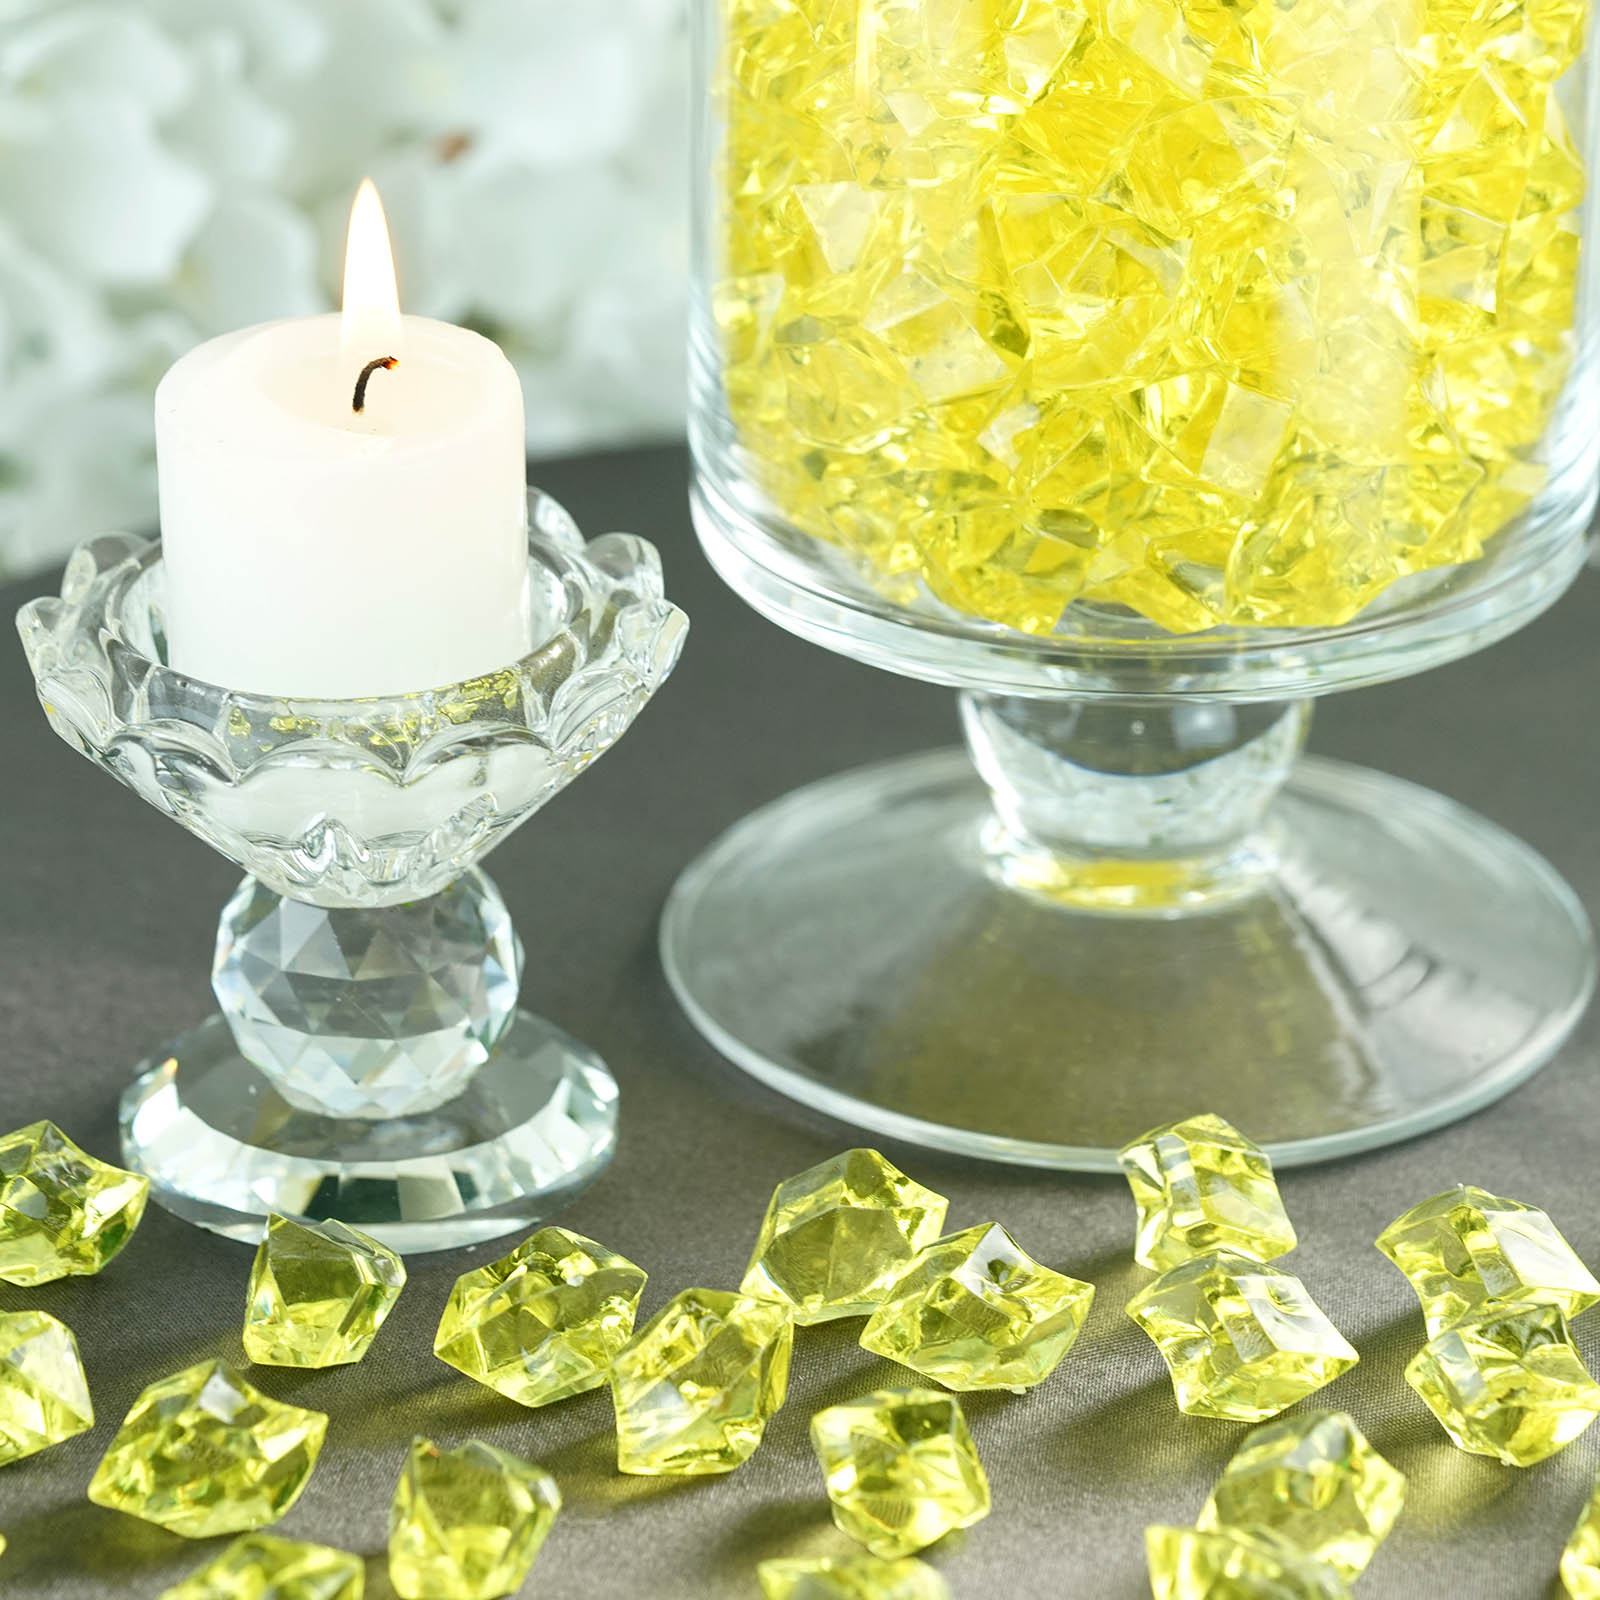 300-Acrylic-Ice-CRYSTAL-LIKE-Pieces-Wedding-Centerpieces-Decorations-Supplies thumbnail 66